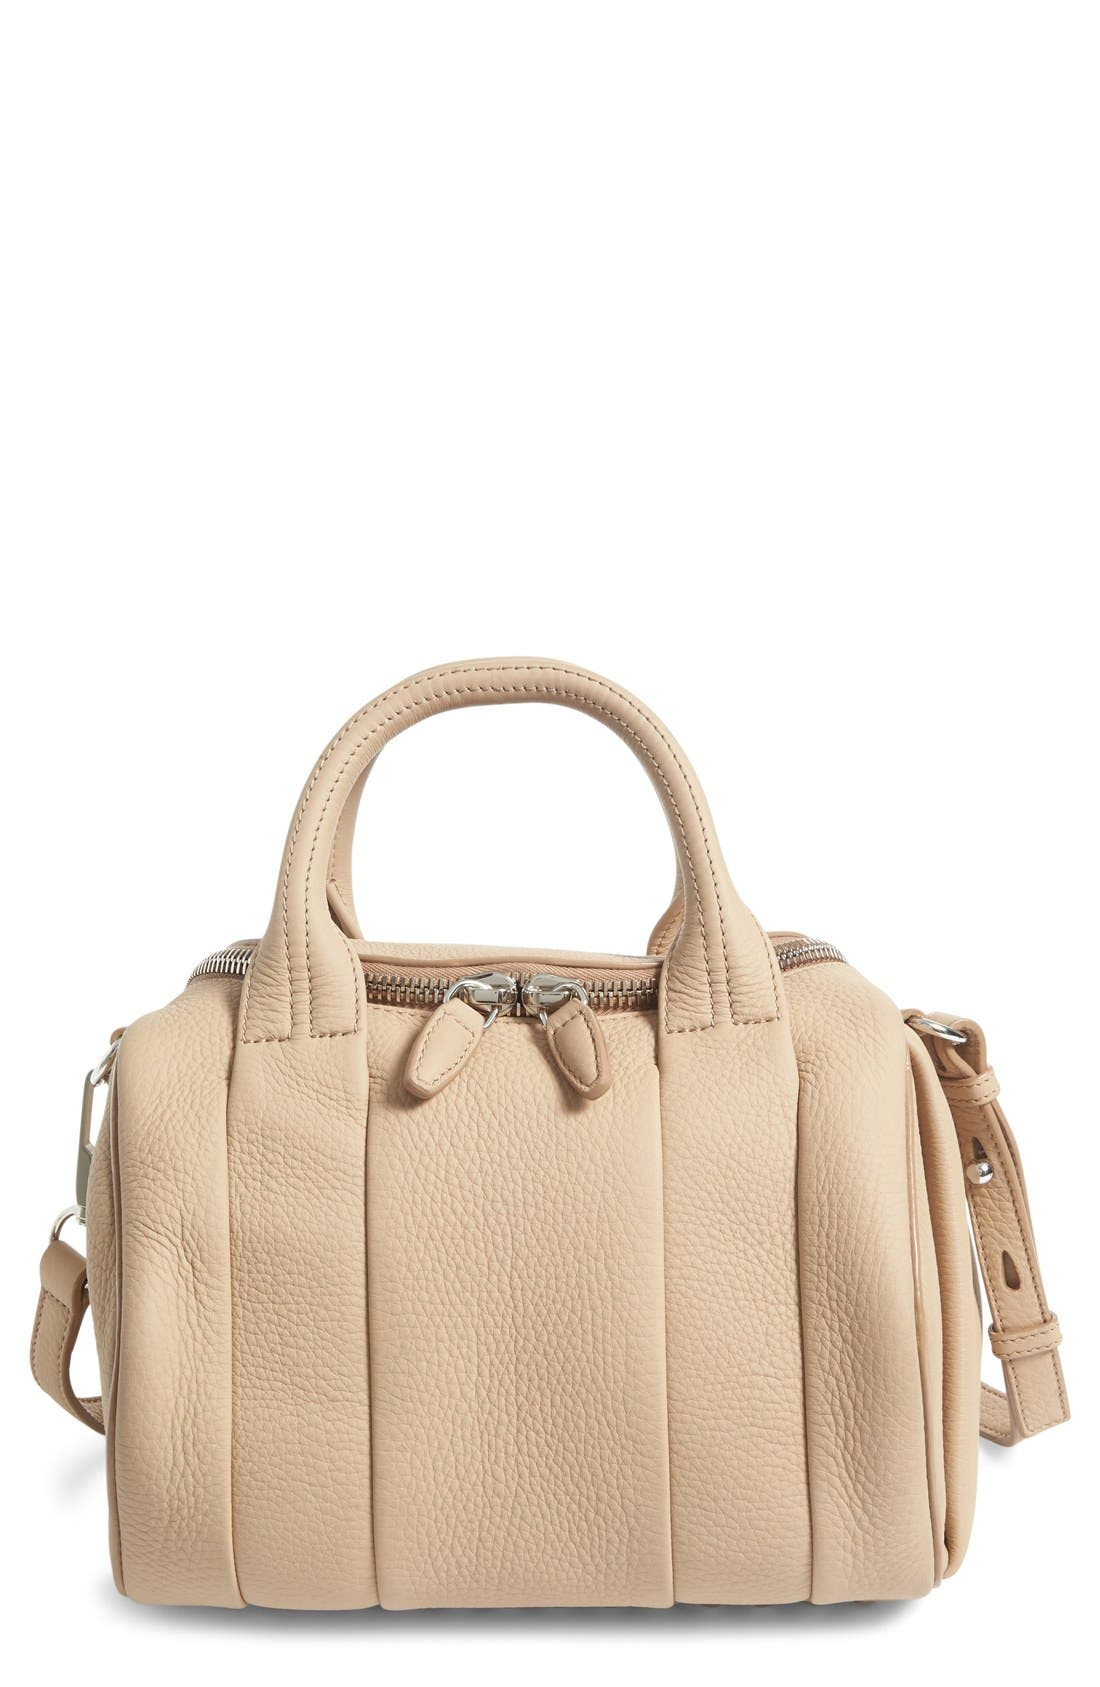 Alternate Image 1 Selected - Alexander Wang Rockie Matte Pebbled Leather Satchel